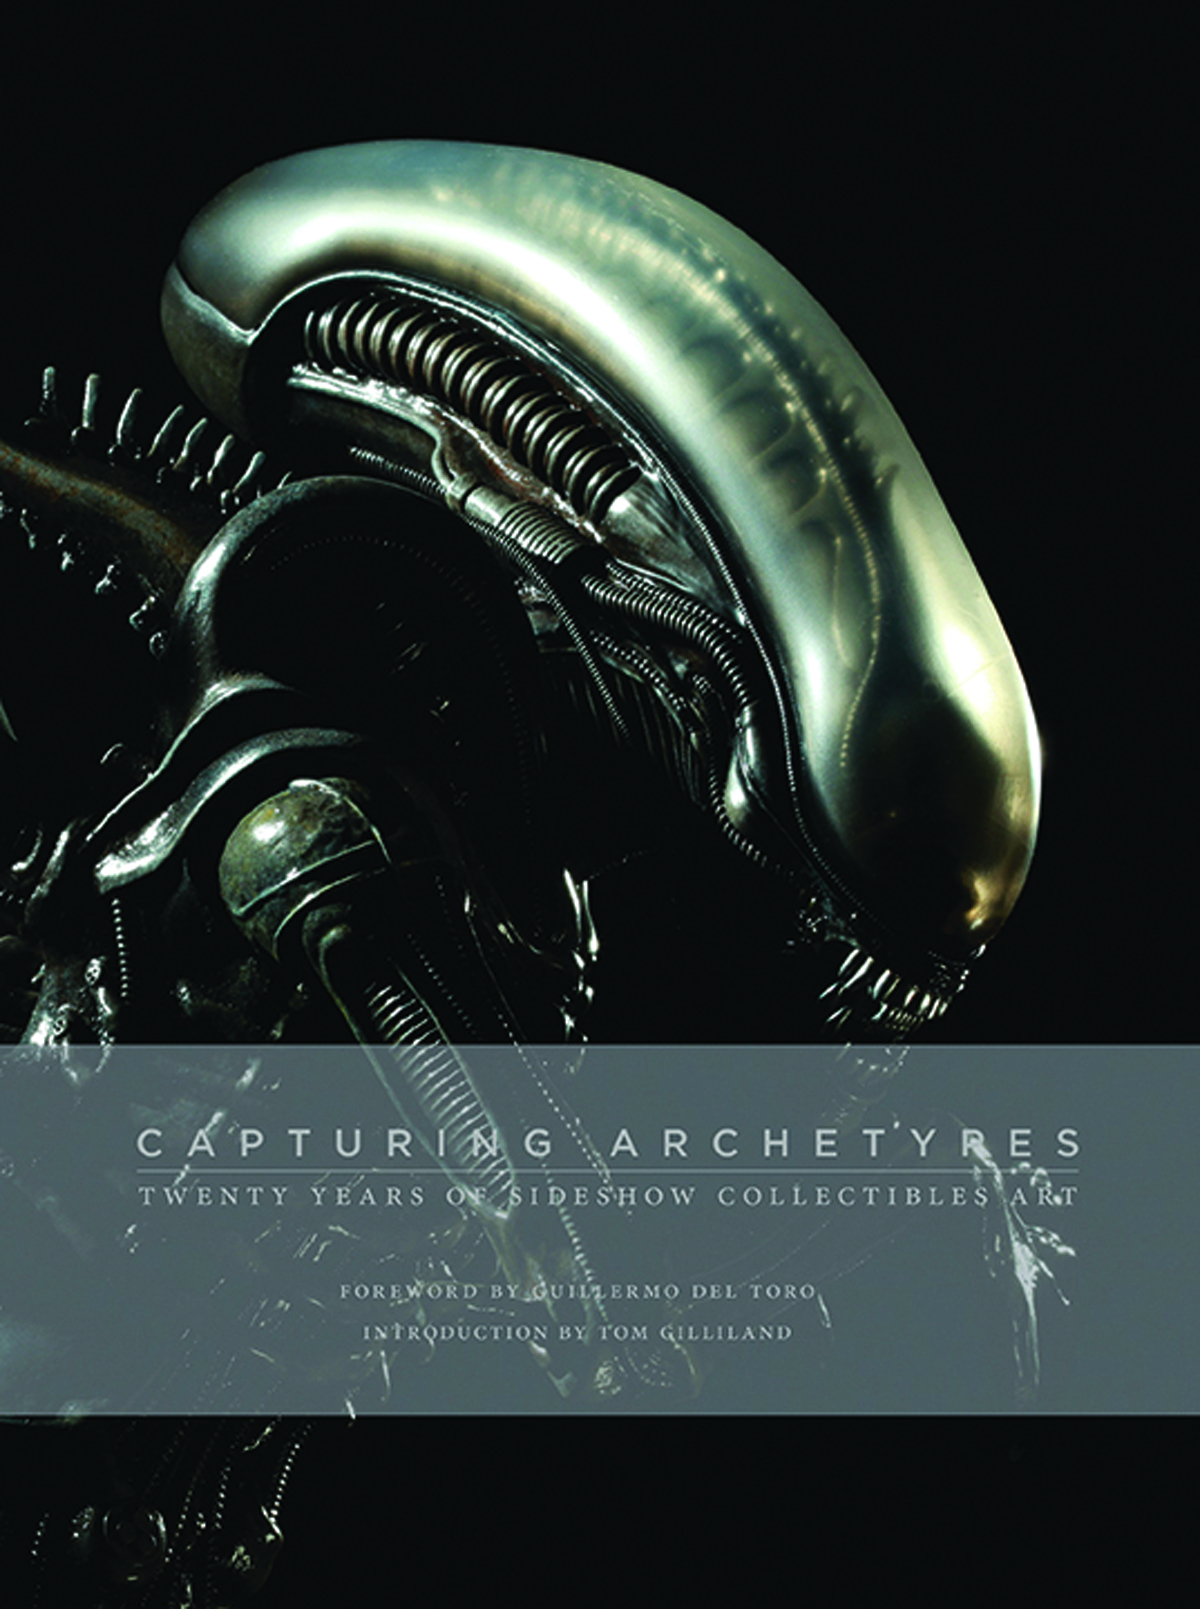 (USE MAY169072)CAPTURING ARCHETYPES VOL 01 20 YEARS SIDESHOW